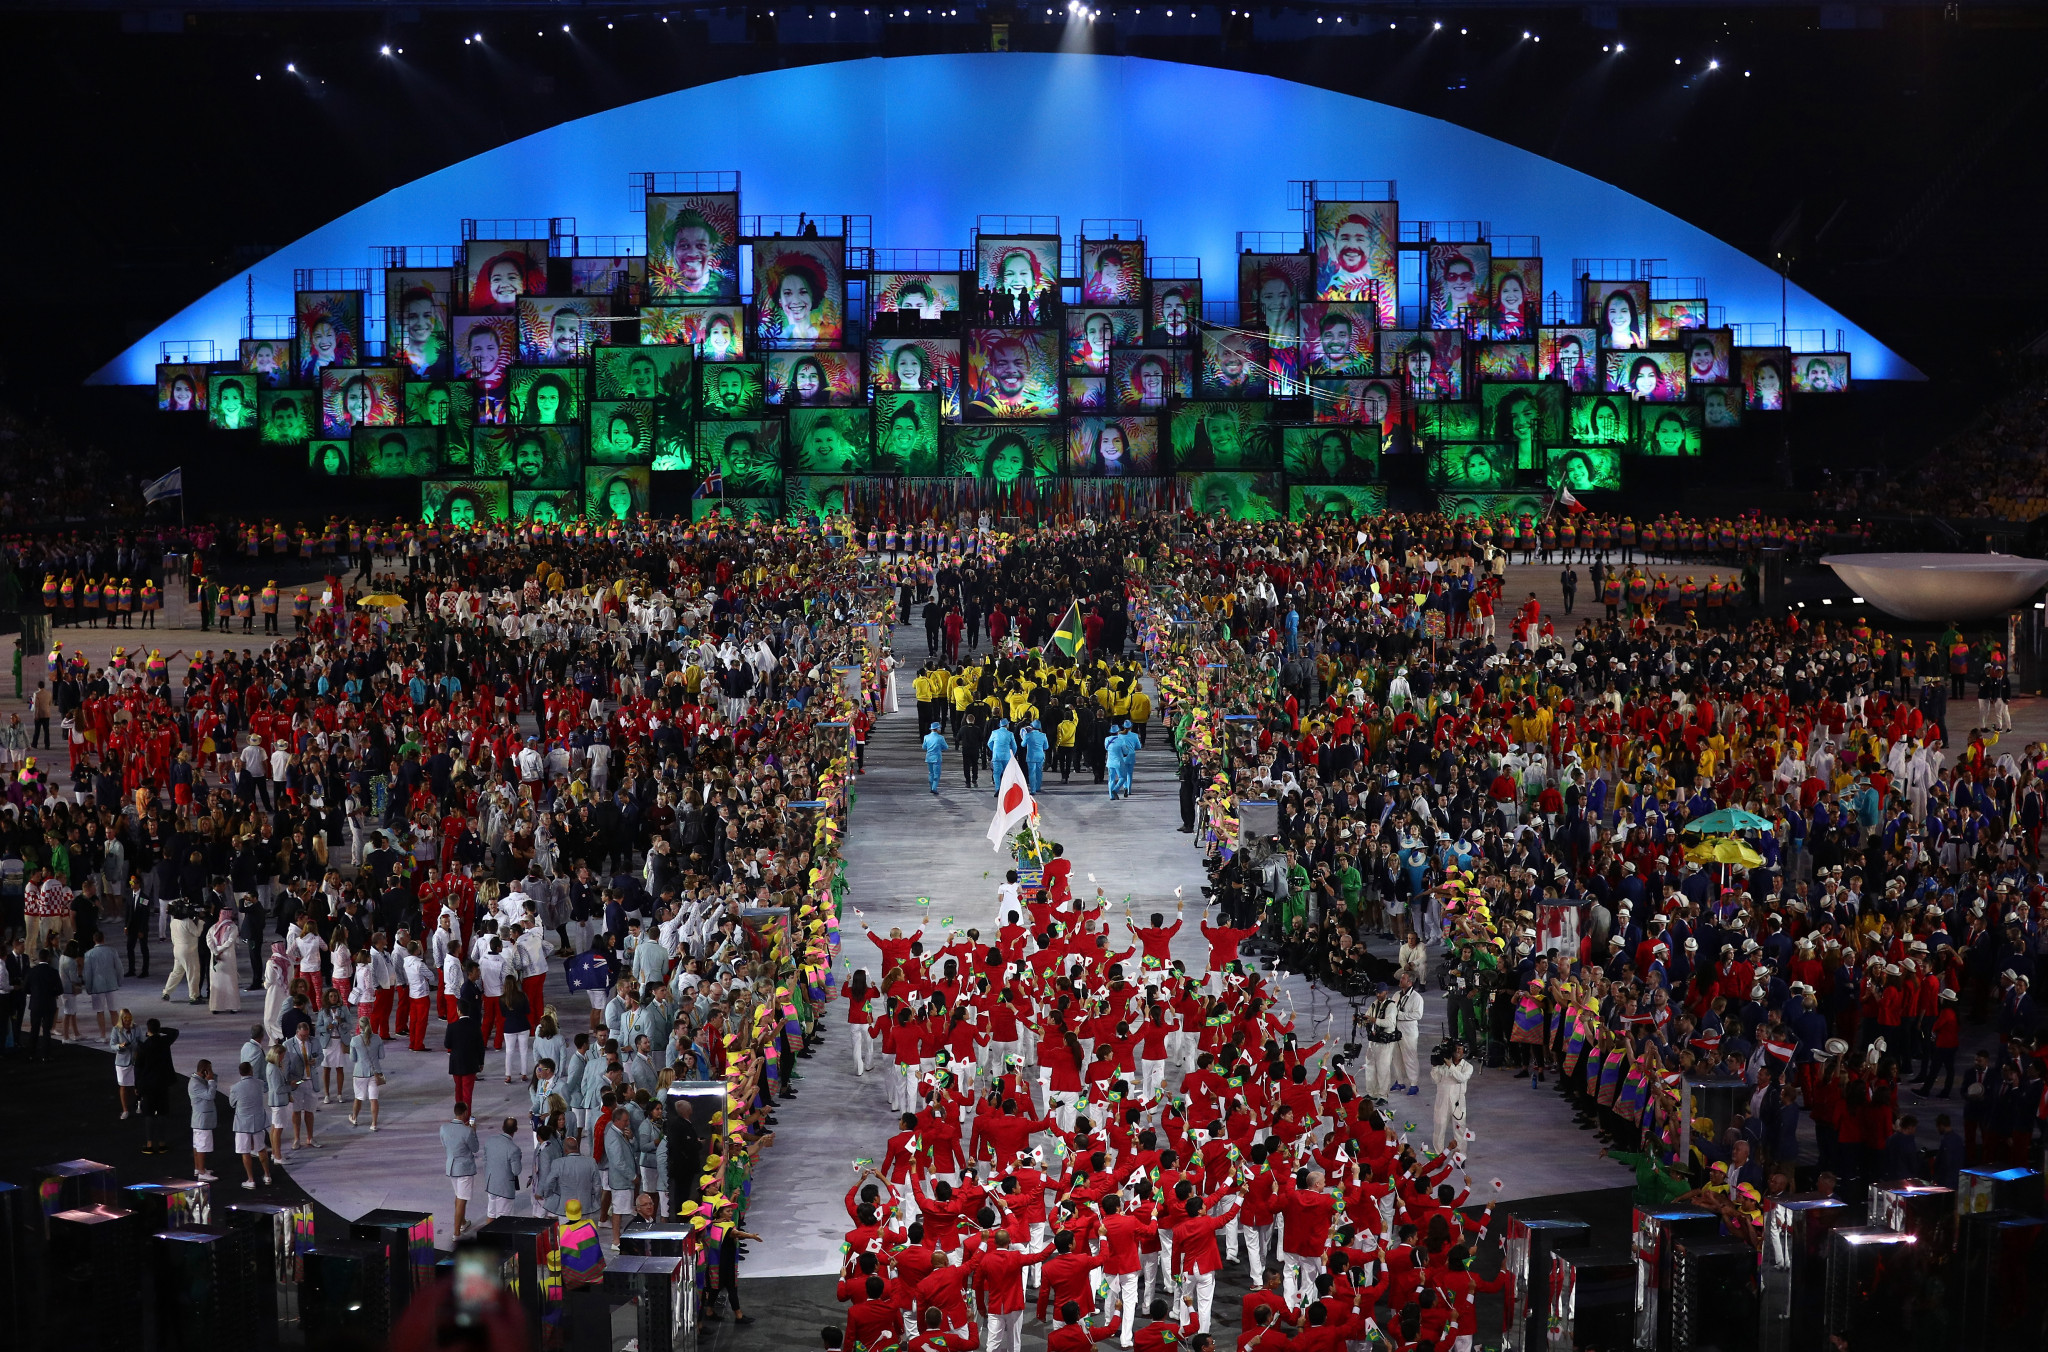 A general view during the Opening Ceremony of the Rio 2016 Olympic Games at Maracana Stadium on August 5, 2016 in Rio de Janeiro ©Getty Images